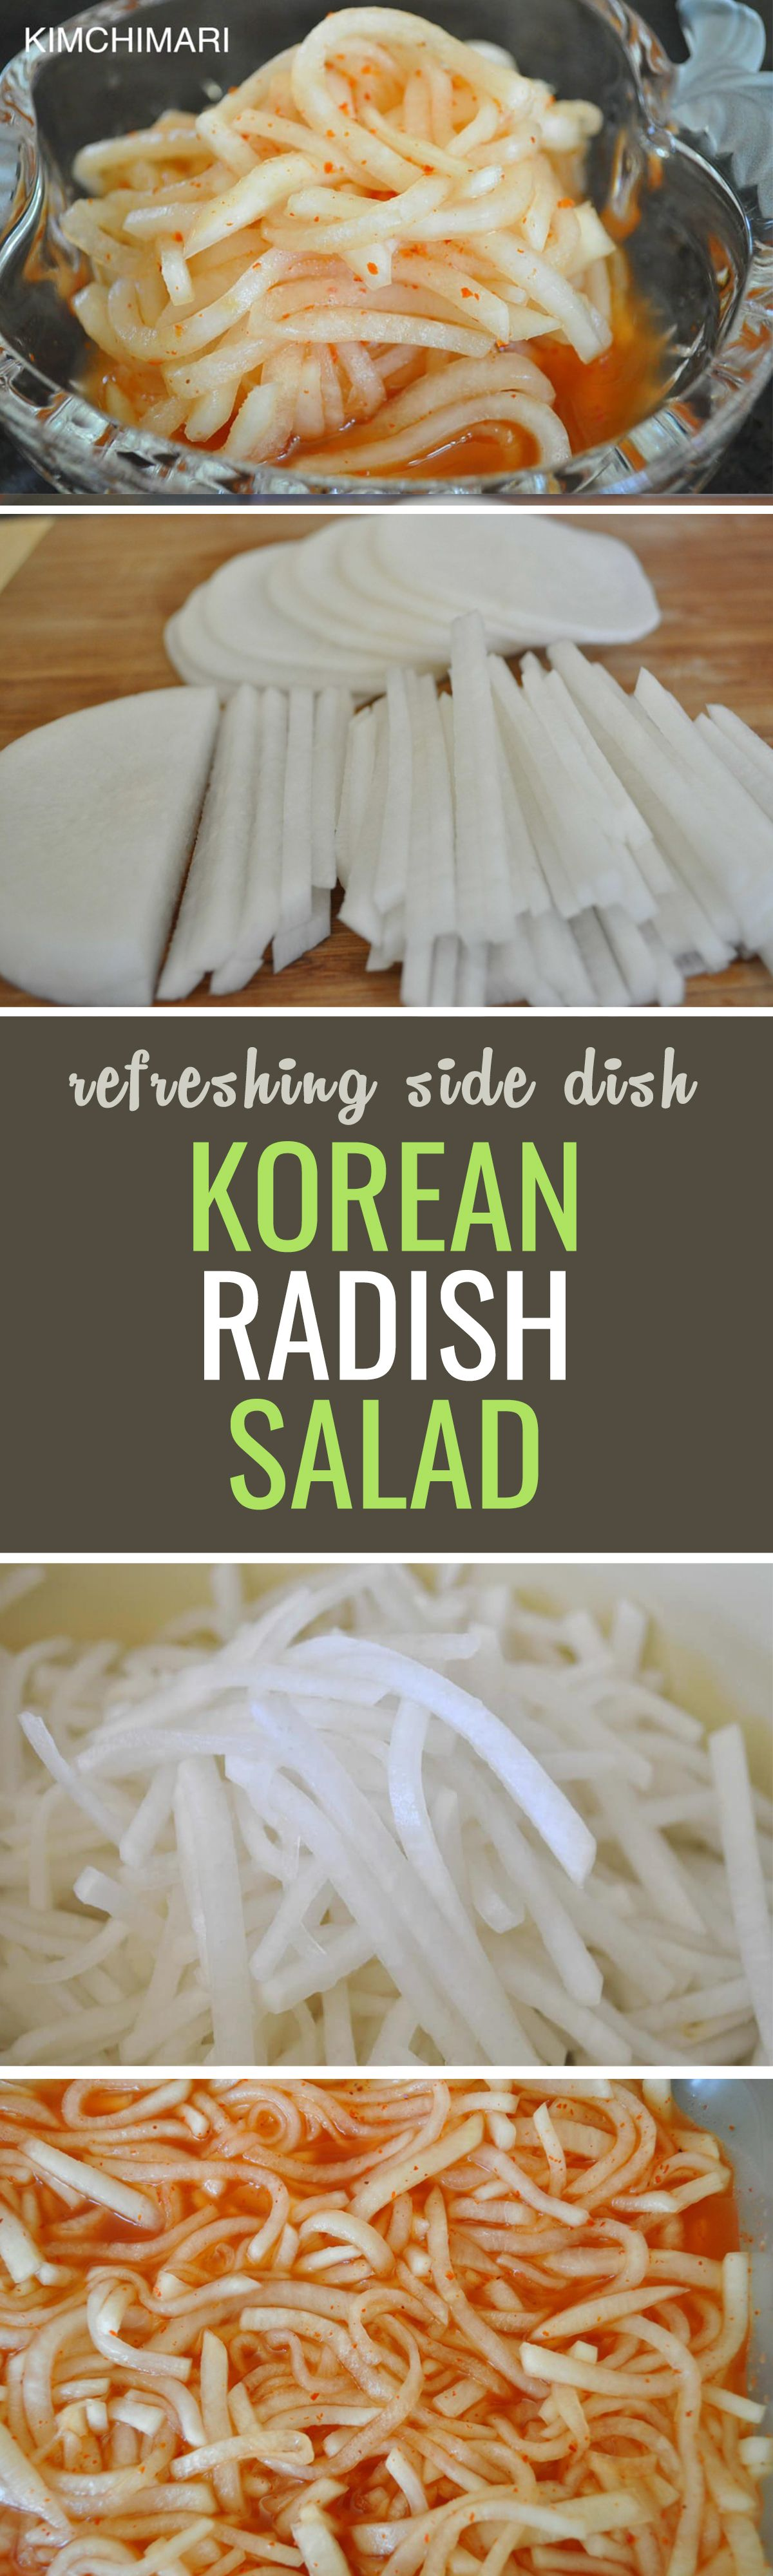 Moo means radish in Korean, and it has versatile use over almost any dish from salads to soups and even tea. This salad is similar to kimchi but a lot lighter and easier to make! {Read Find more} about {korean cuisine korean food korea food south korean food} {clicking  - clic} link below:  http://foodyoushouldtry.com/33-best-dishes-taste-korea/